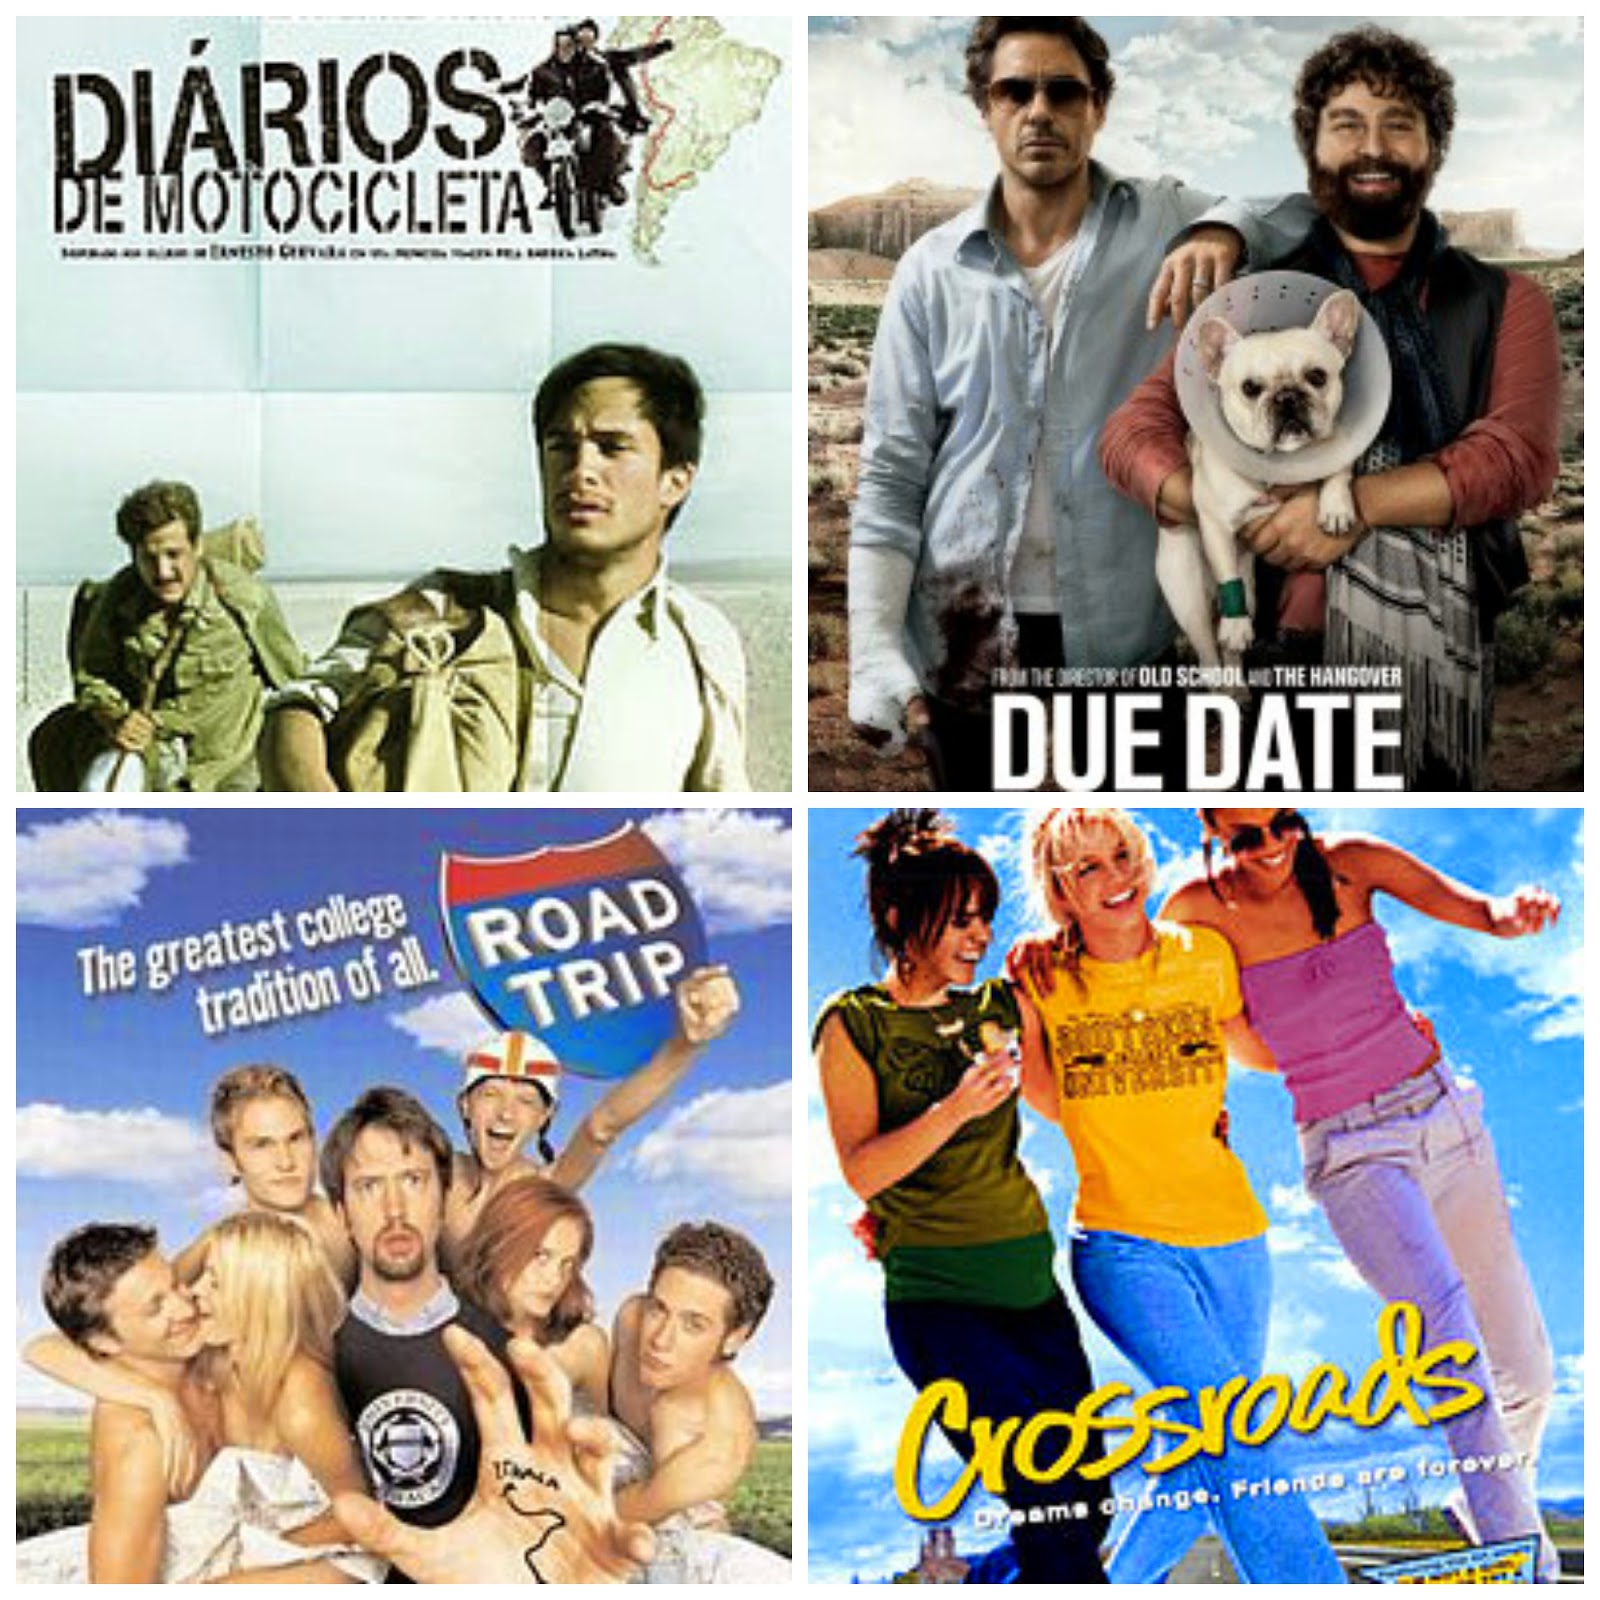 Filmes sobre roadtrip